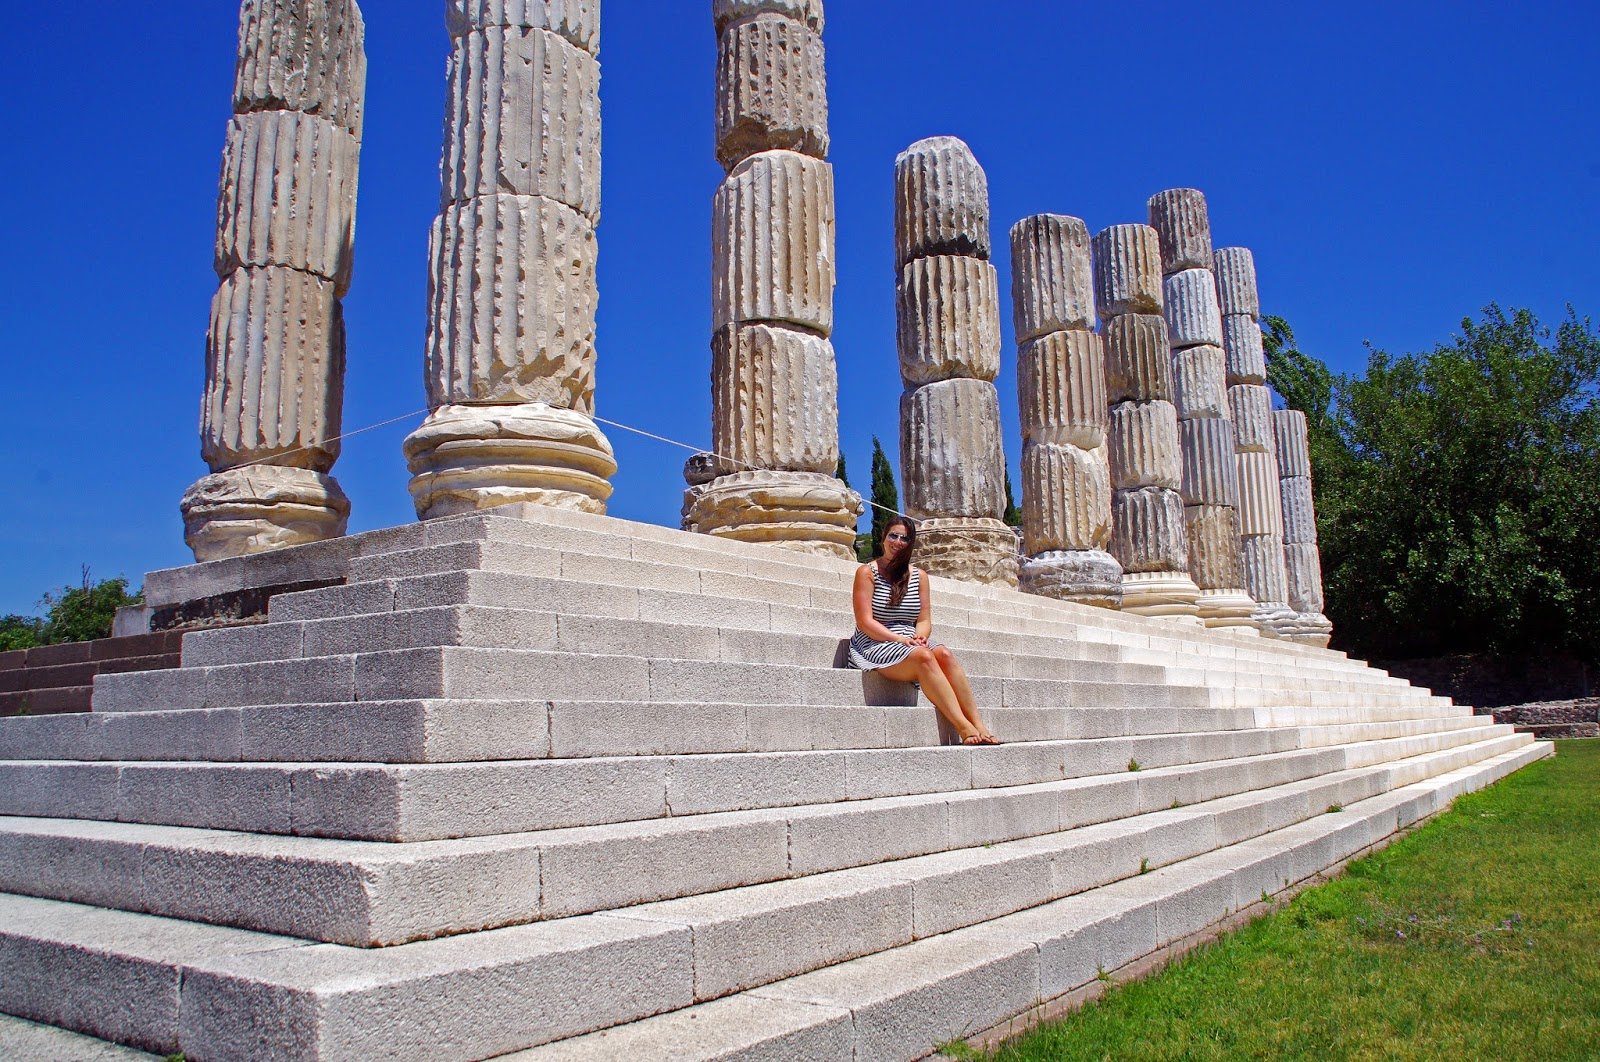 Simone sitting on steps of Apollon Symintheion ruins